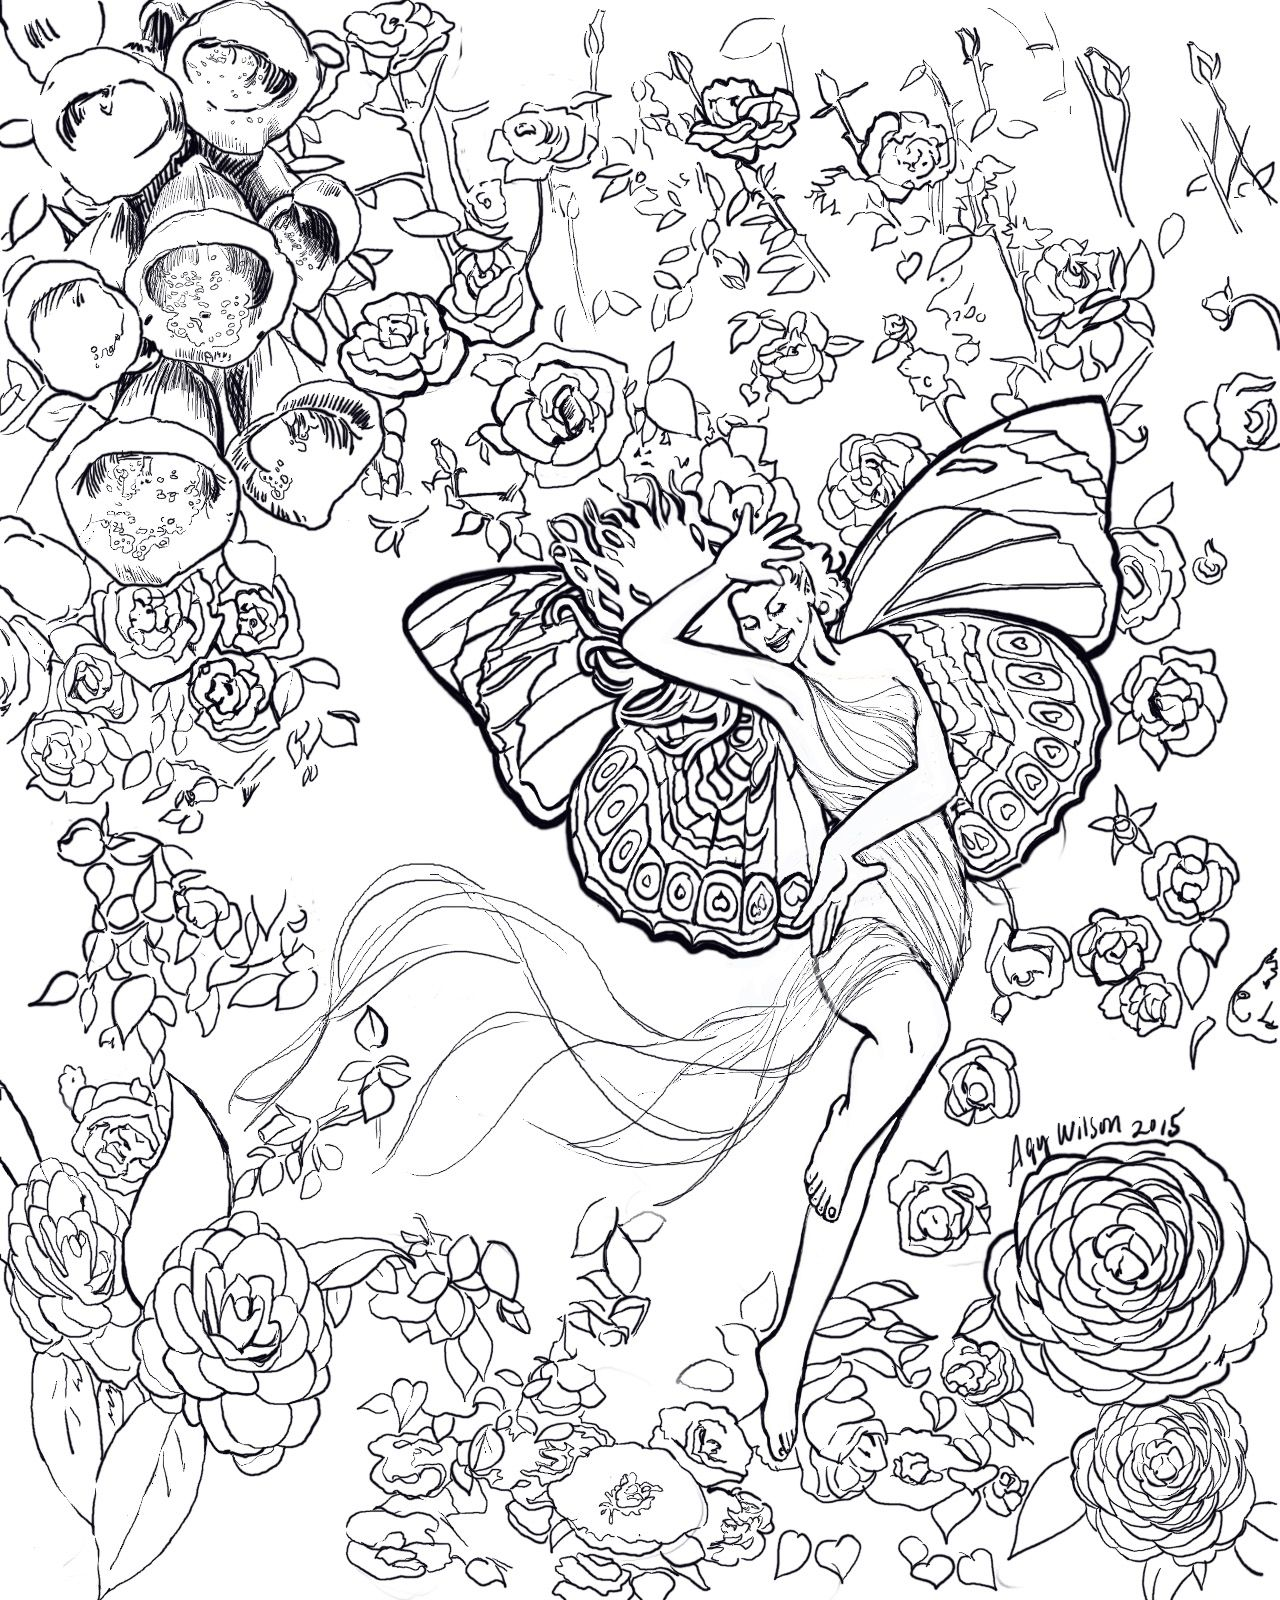 Working on a new all ages coloring book Angels and Fae e of